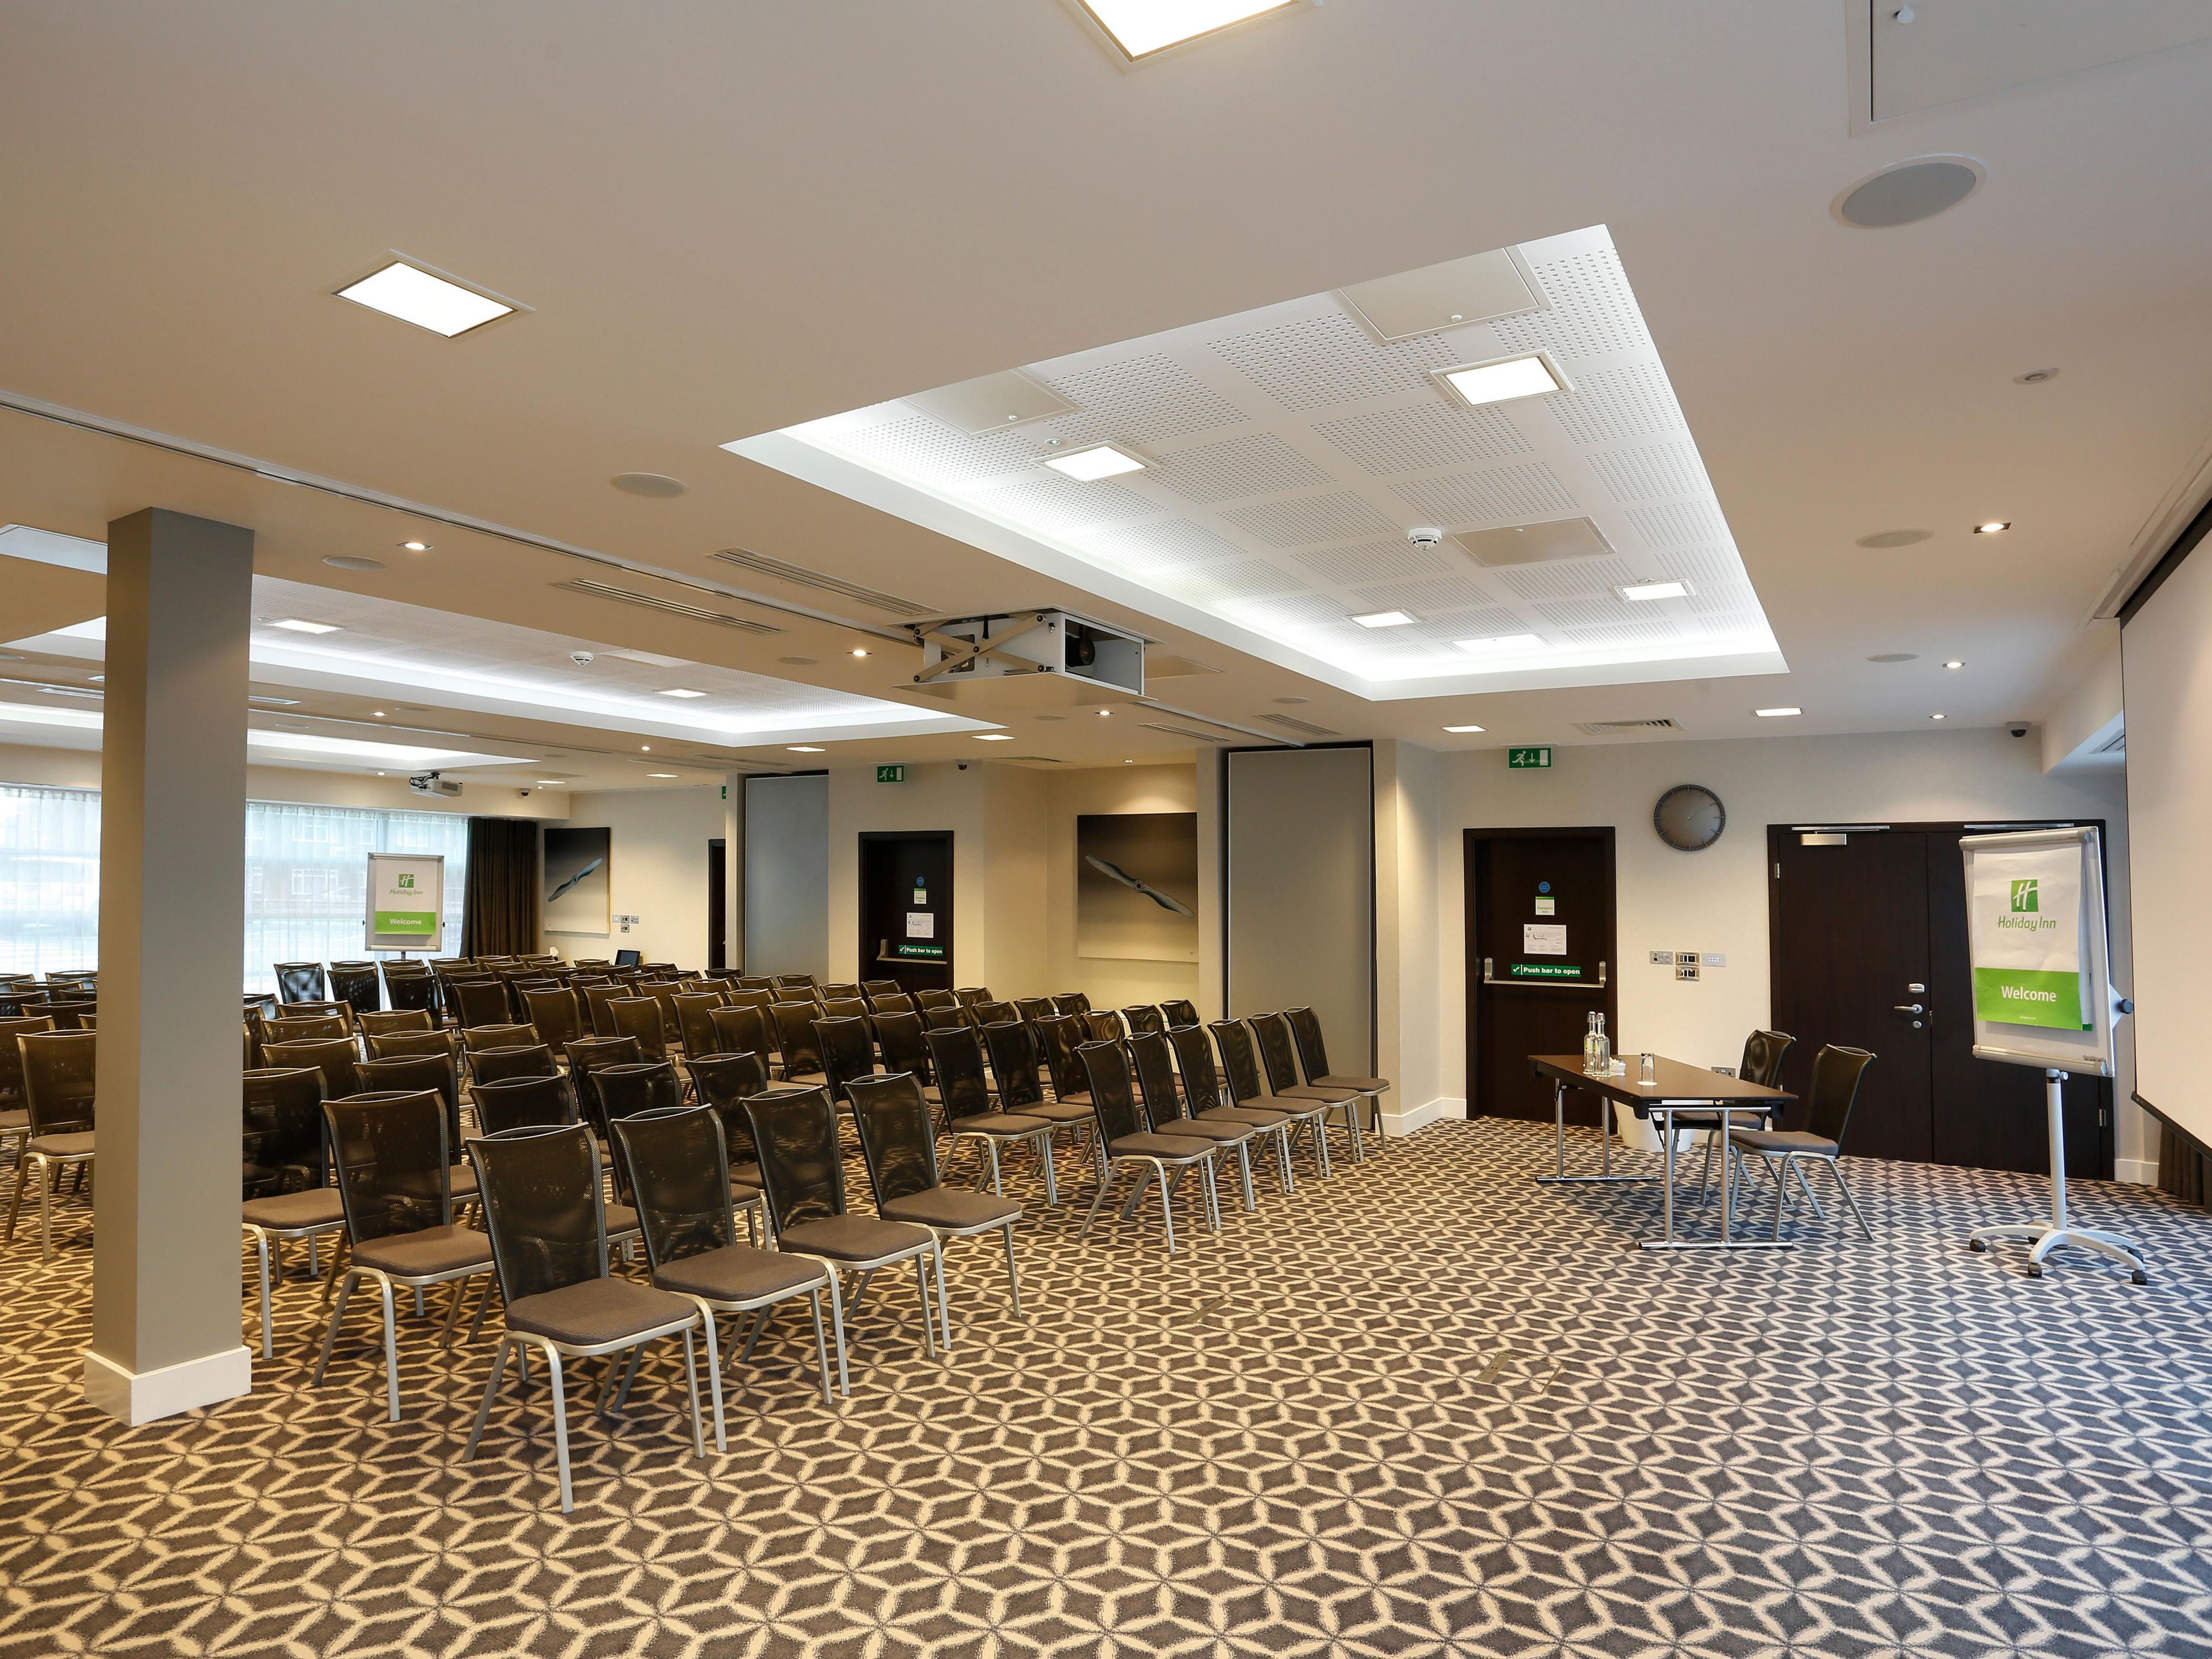 Our meeting rooms offer plenty of natural day light